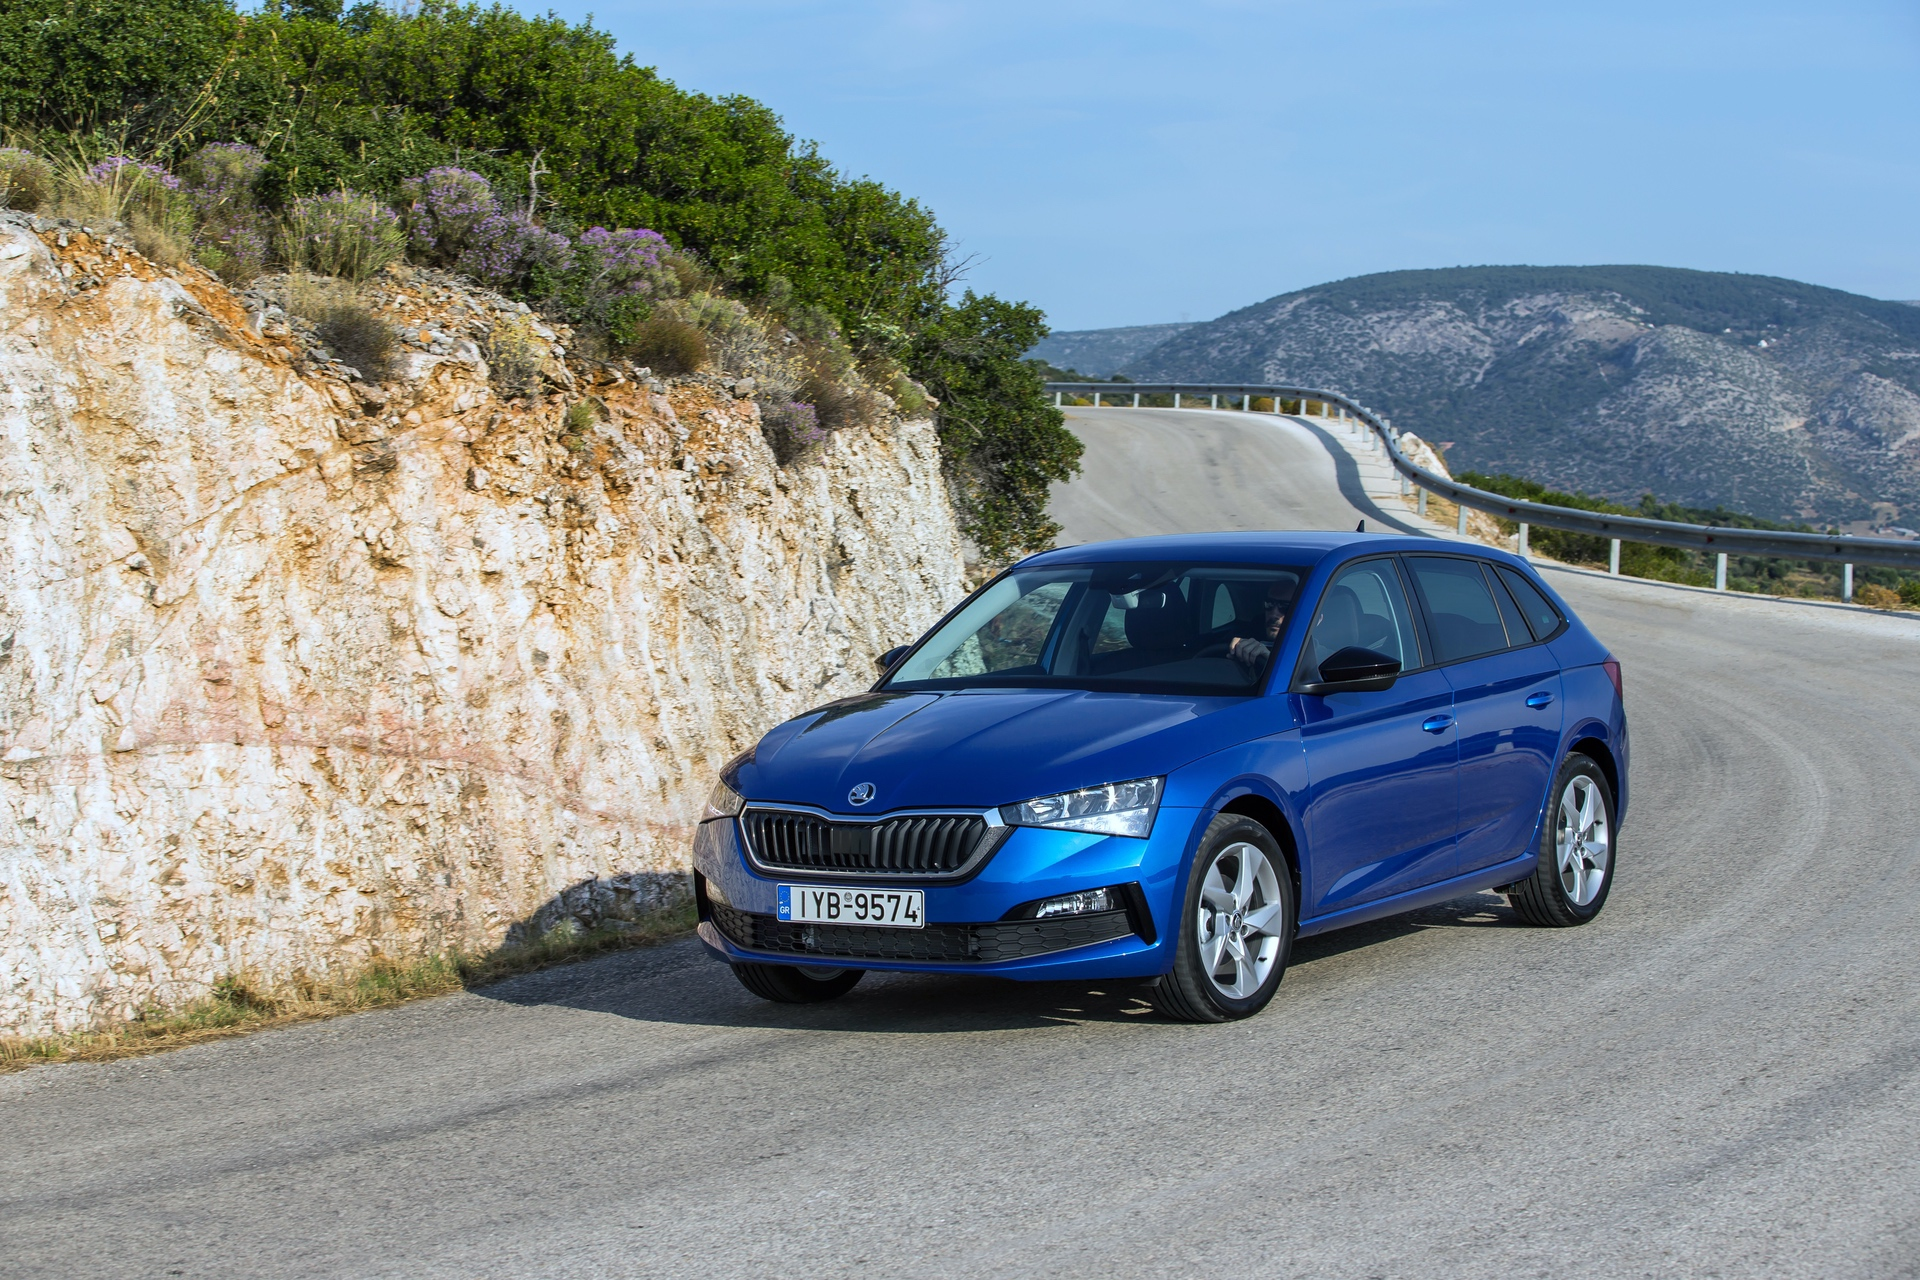 Skoda_Scala_Greek_presskit_0041